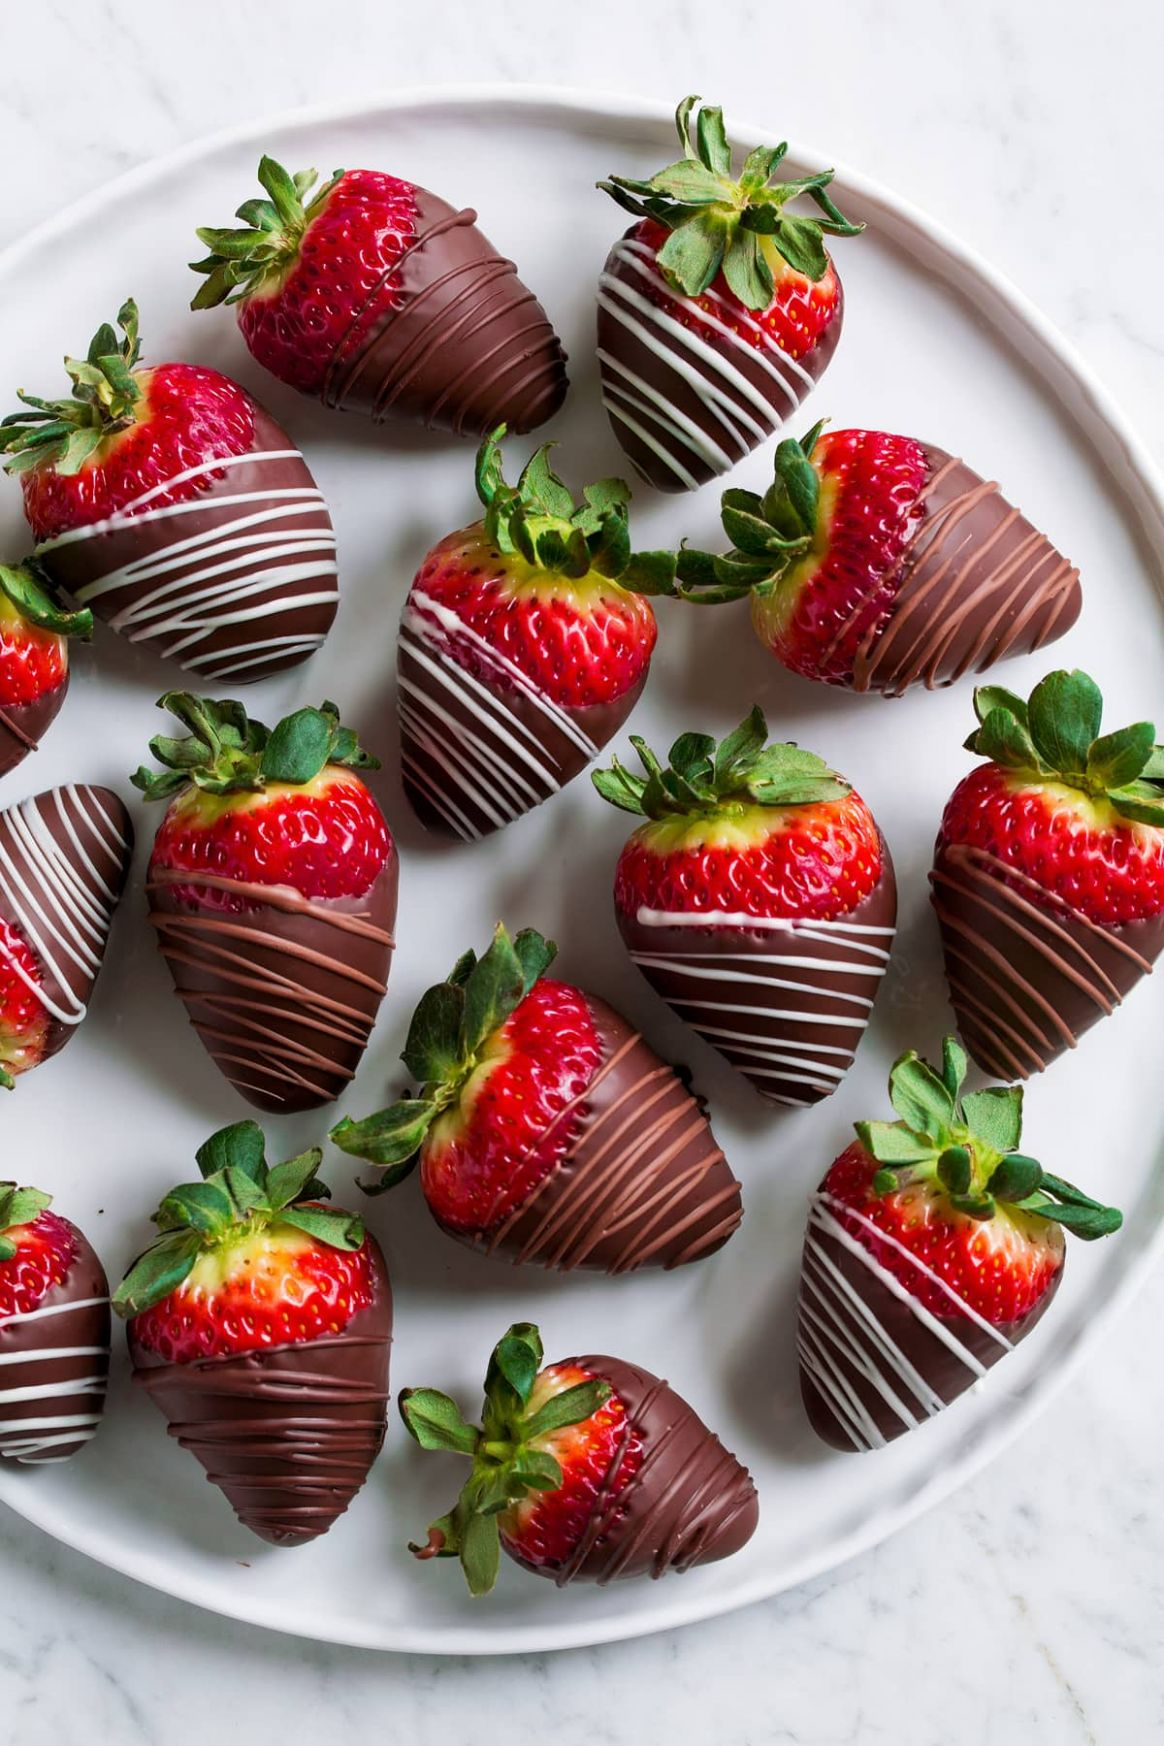 Chocolate Covered Strawberries - Cooking Classy - Recipes Chocolate Dipped Strawberries